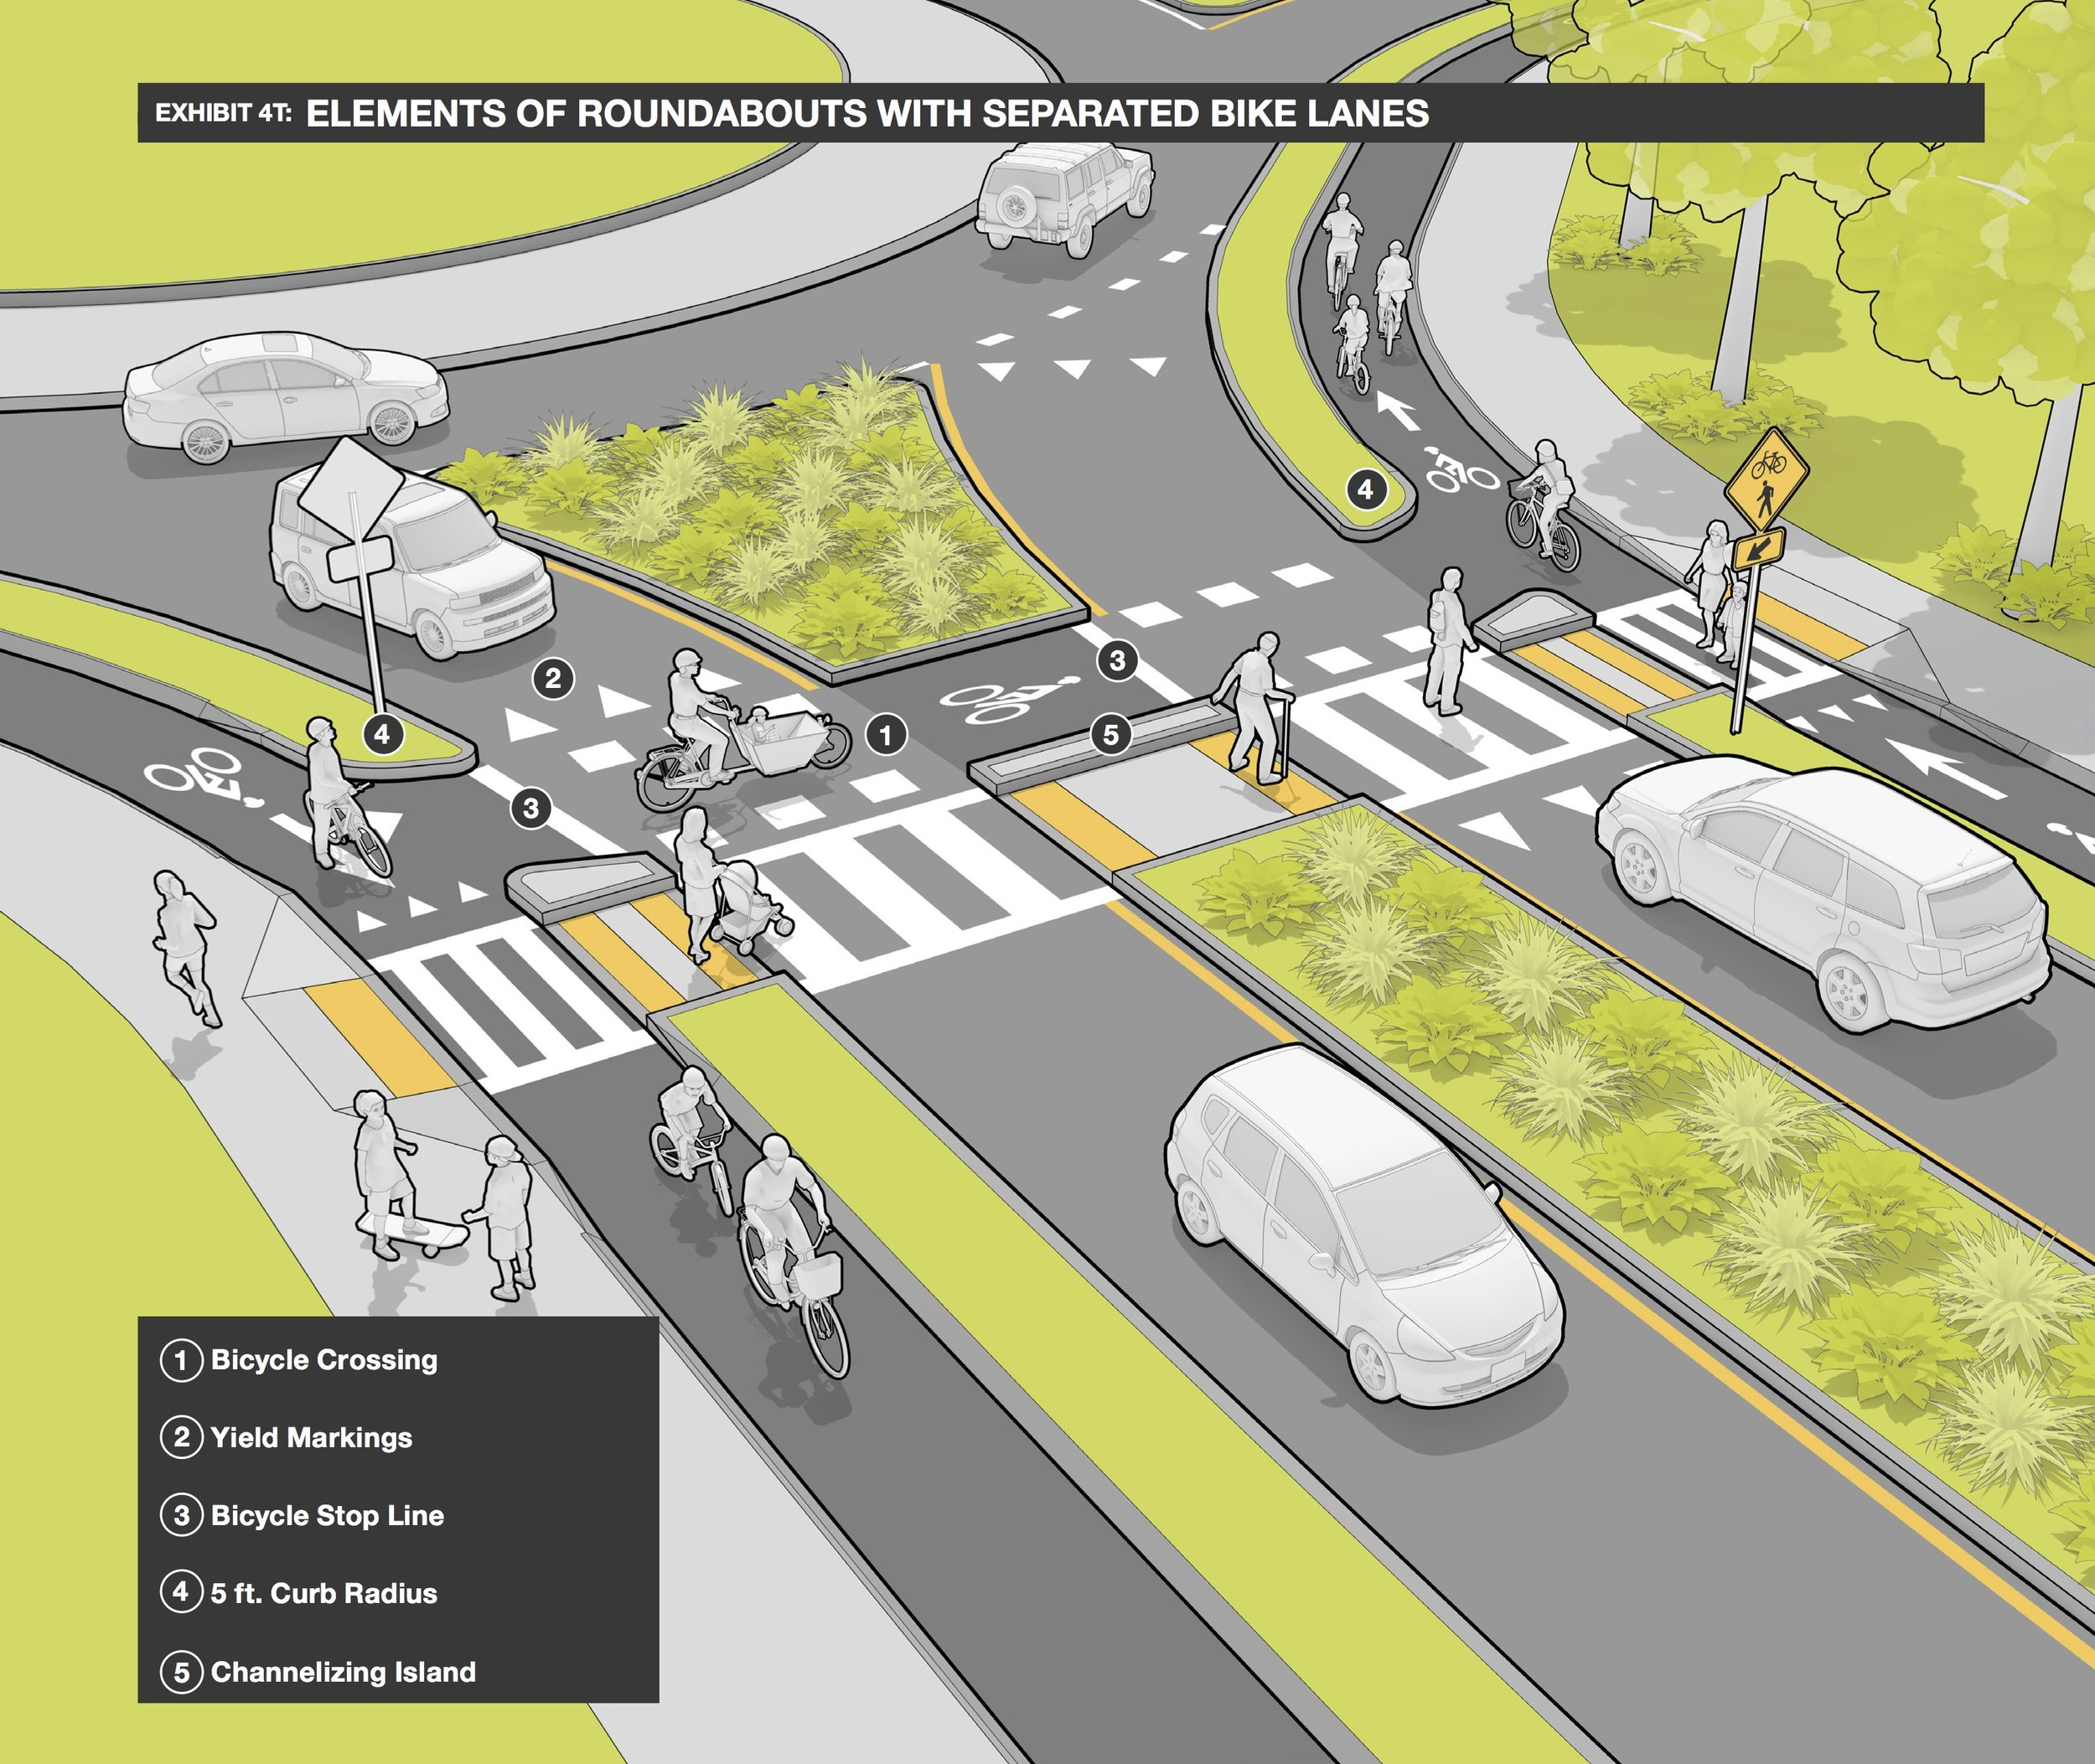 The roundabout design from the MassDOT Separated Bike Lanes manual.